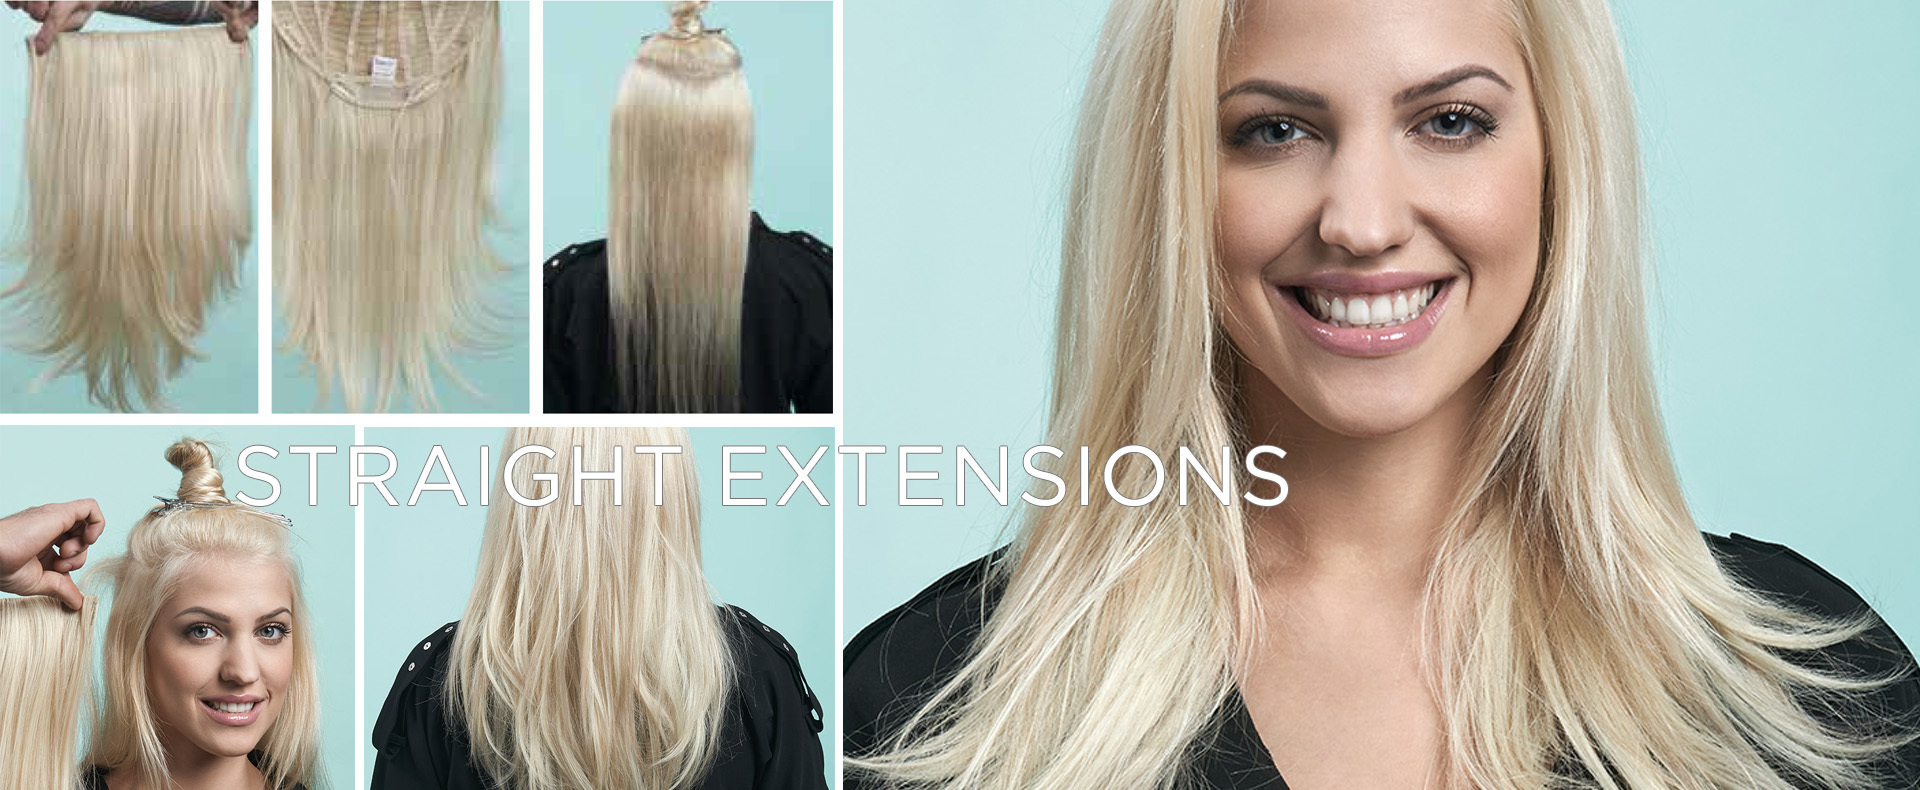 22 inch Straight Extension  Glatte ClipIn Extension